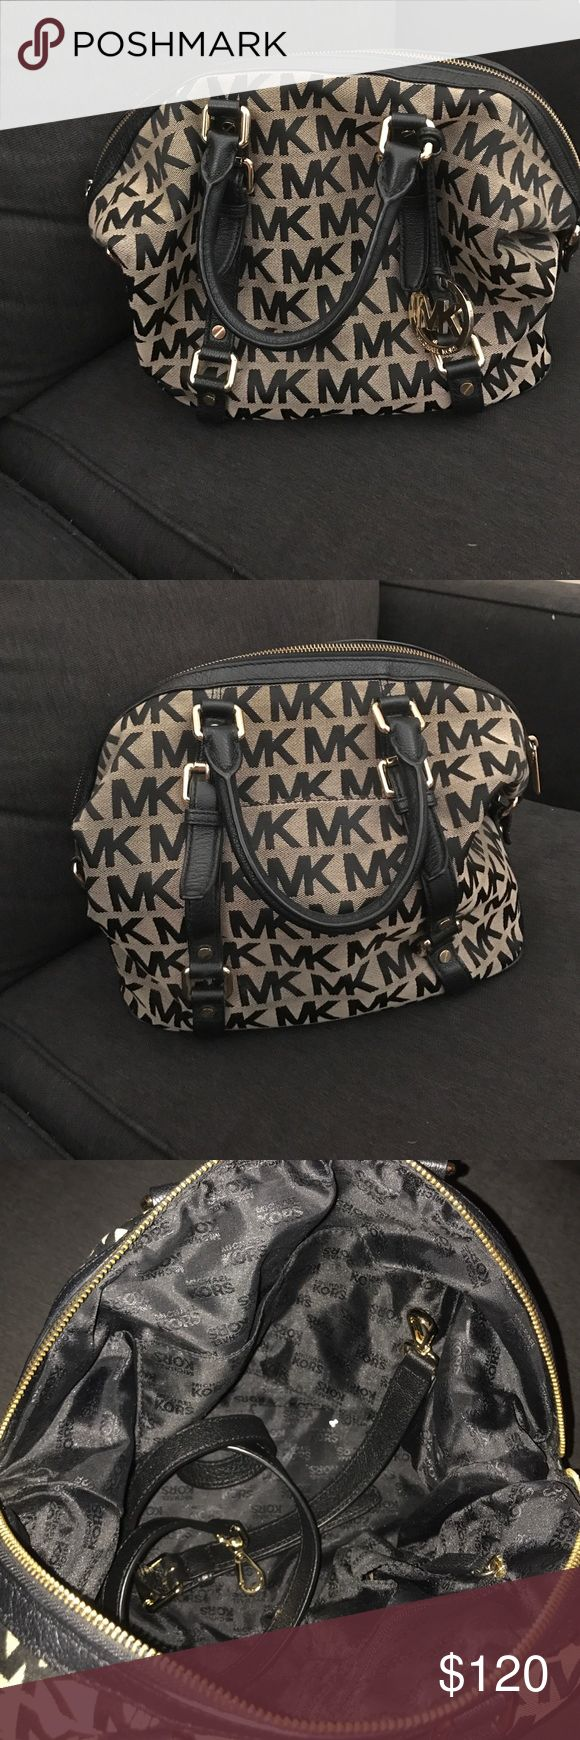 Michael Kors purse Beige and black purse. Comes with shoulder strap. Michael Kors Bags Shoulder Bags